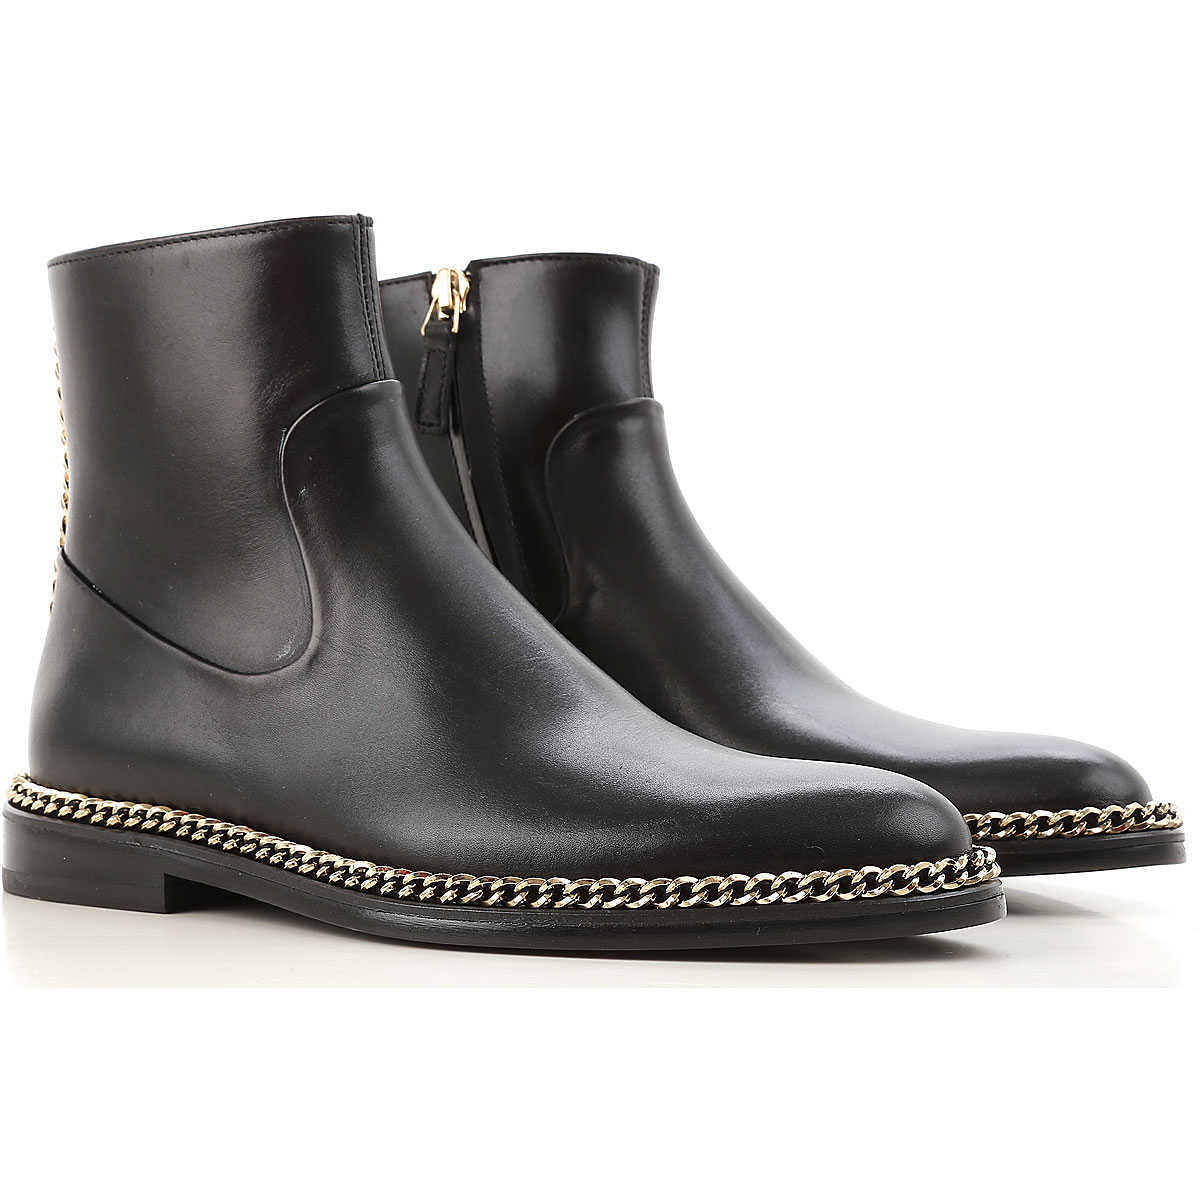 Lanvin Boots for Women Booties On Sale in Outlet - GOOFASH